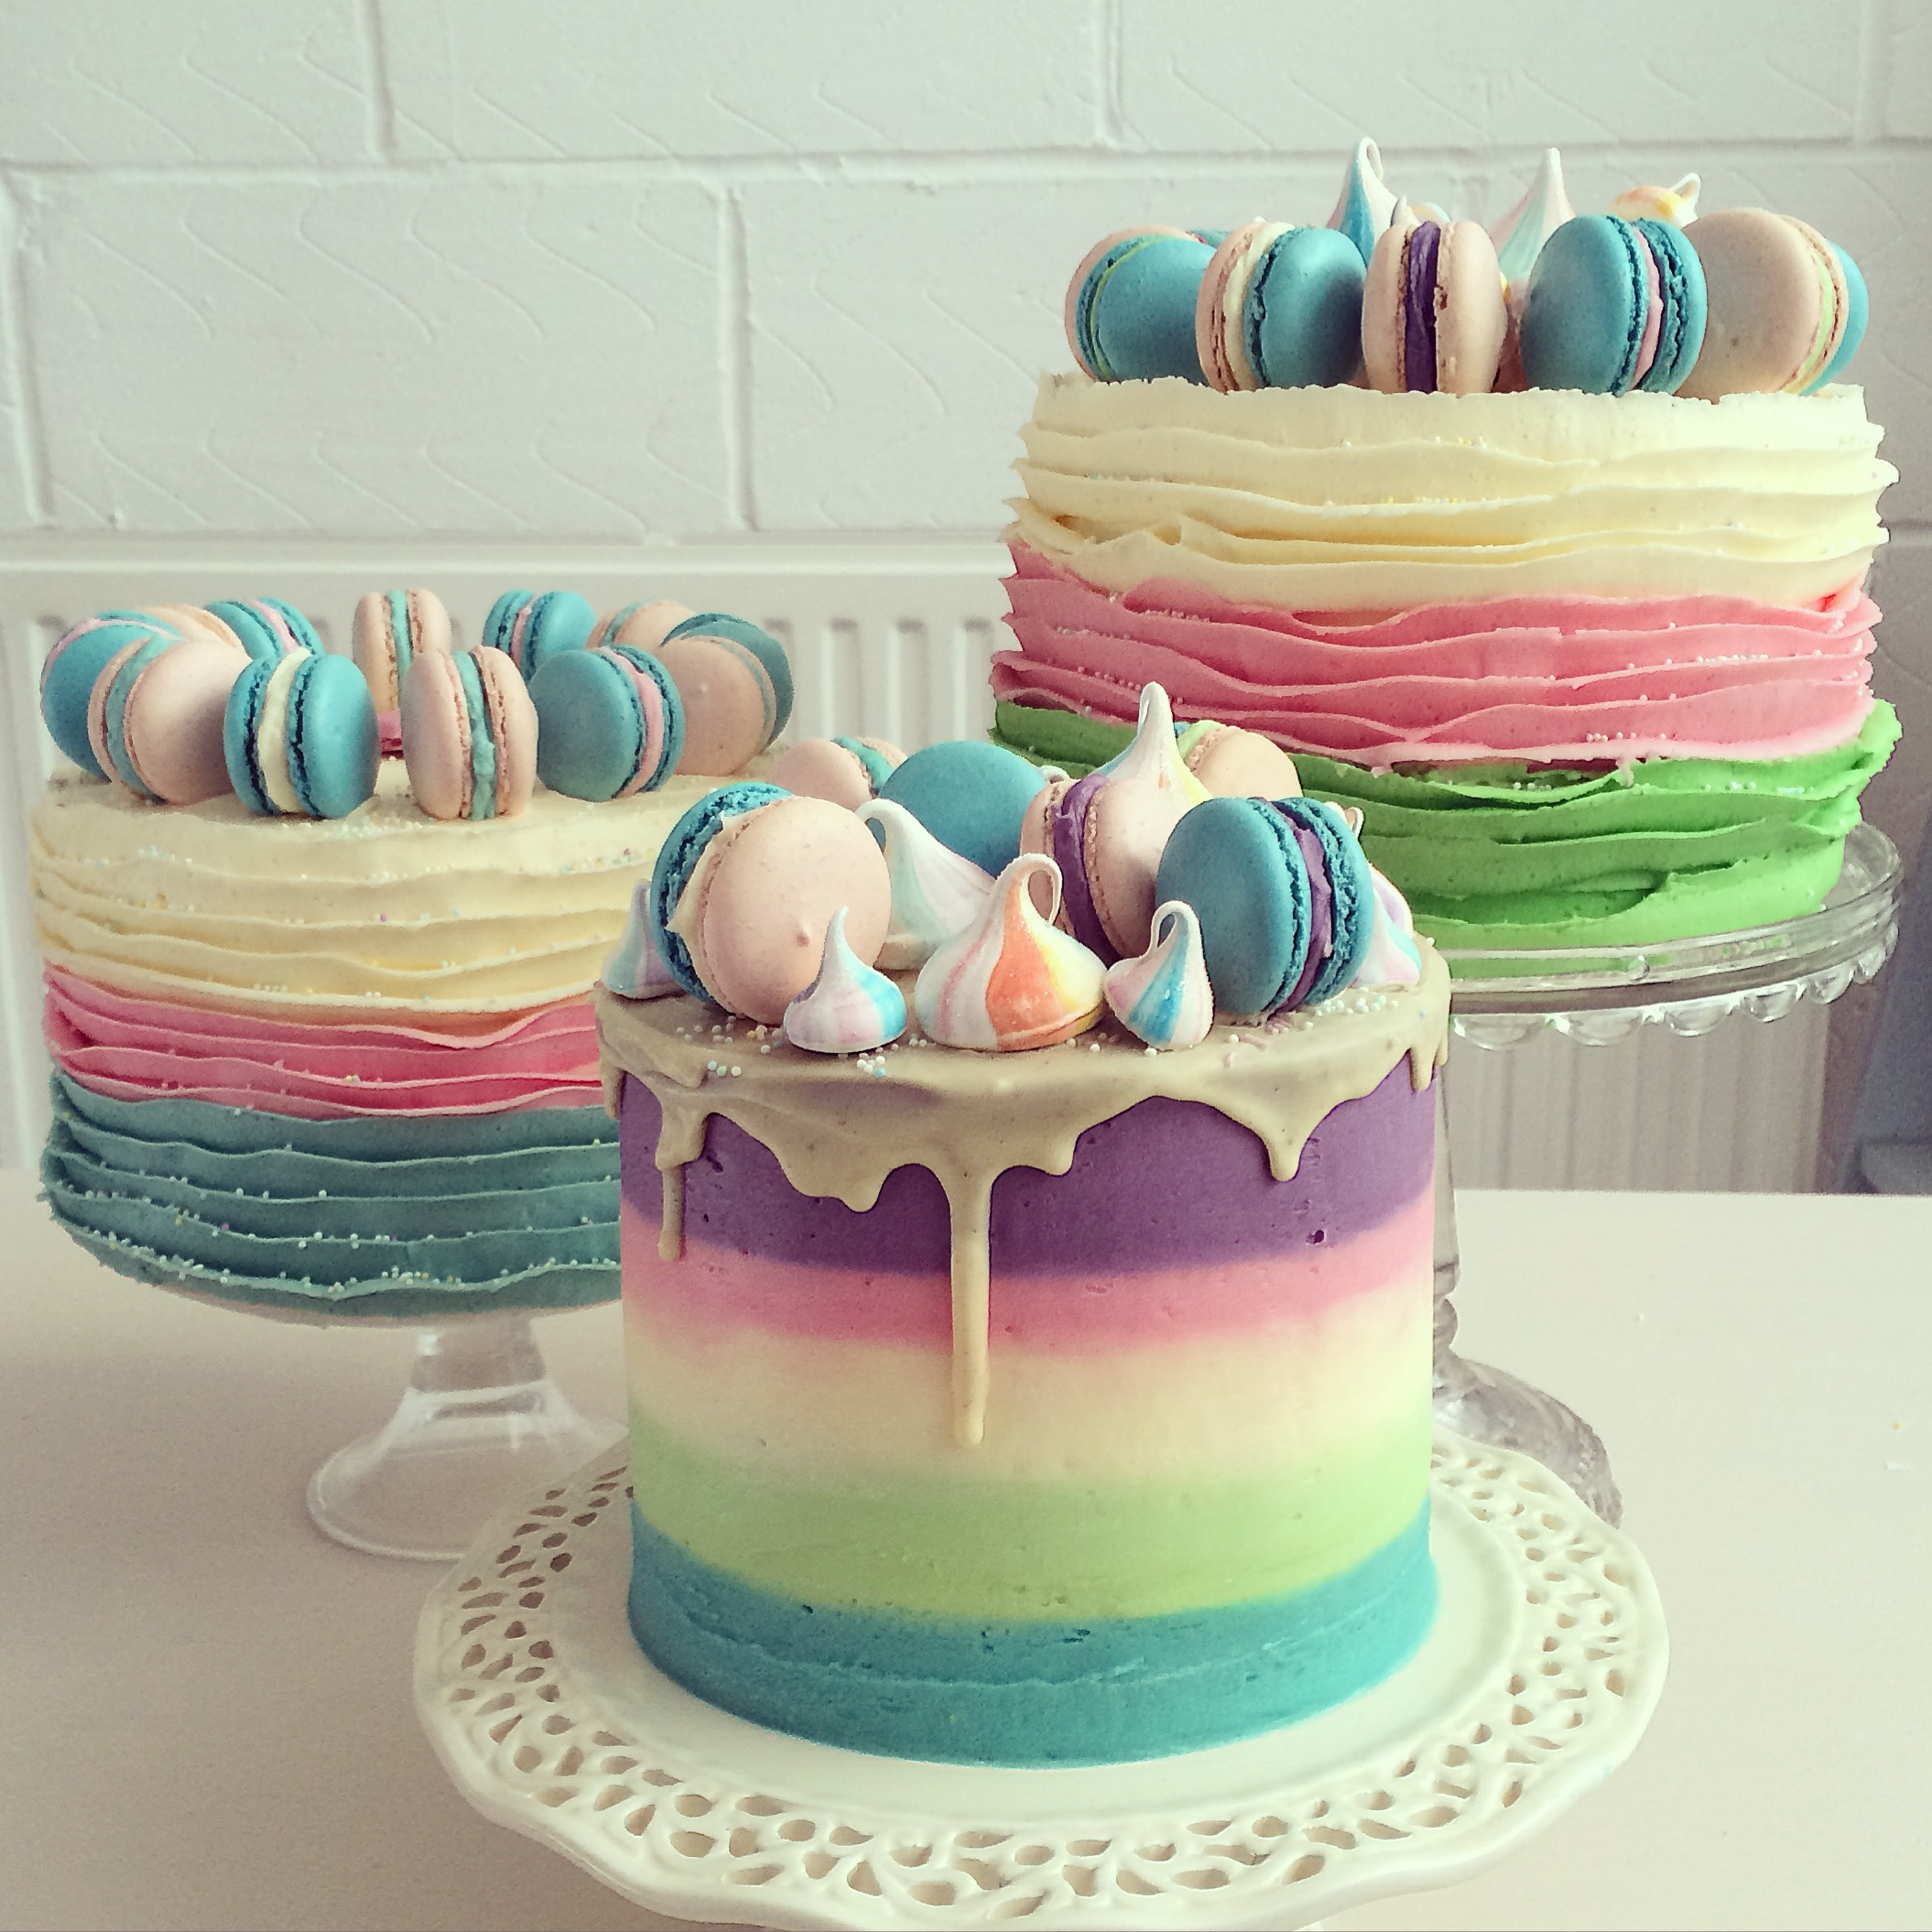 Layer Cakes From Crumbs Couture Crumbs Couture Cupcakes